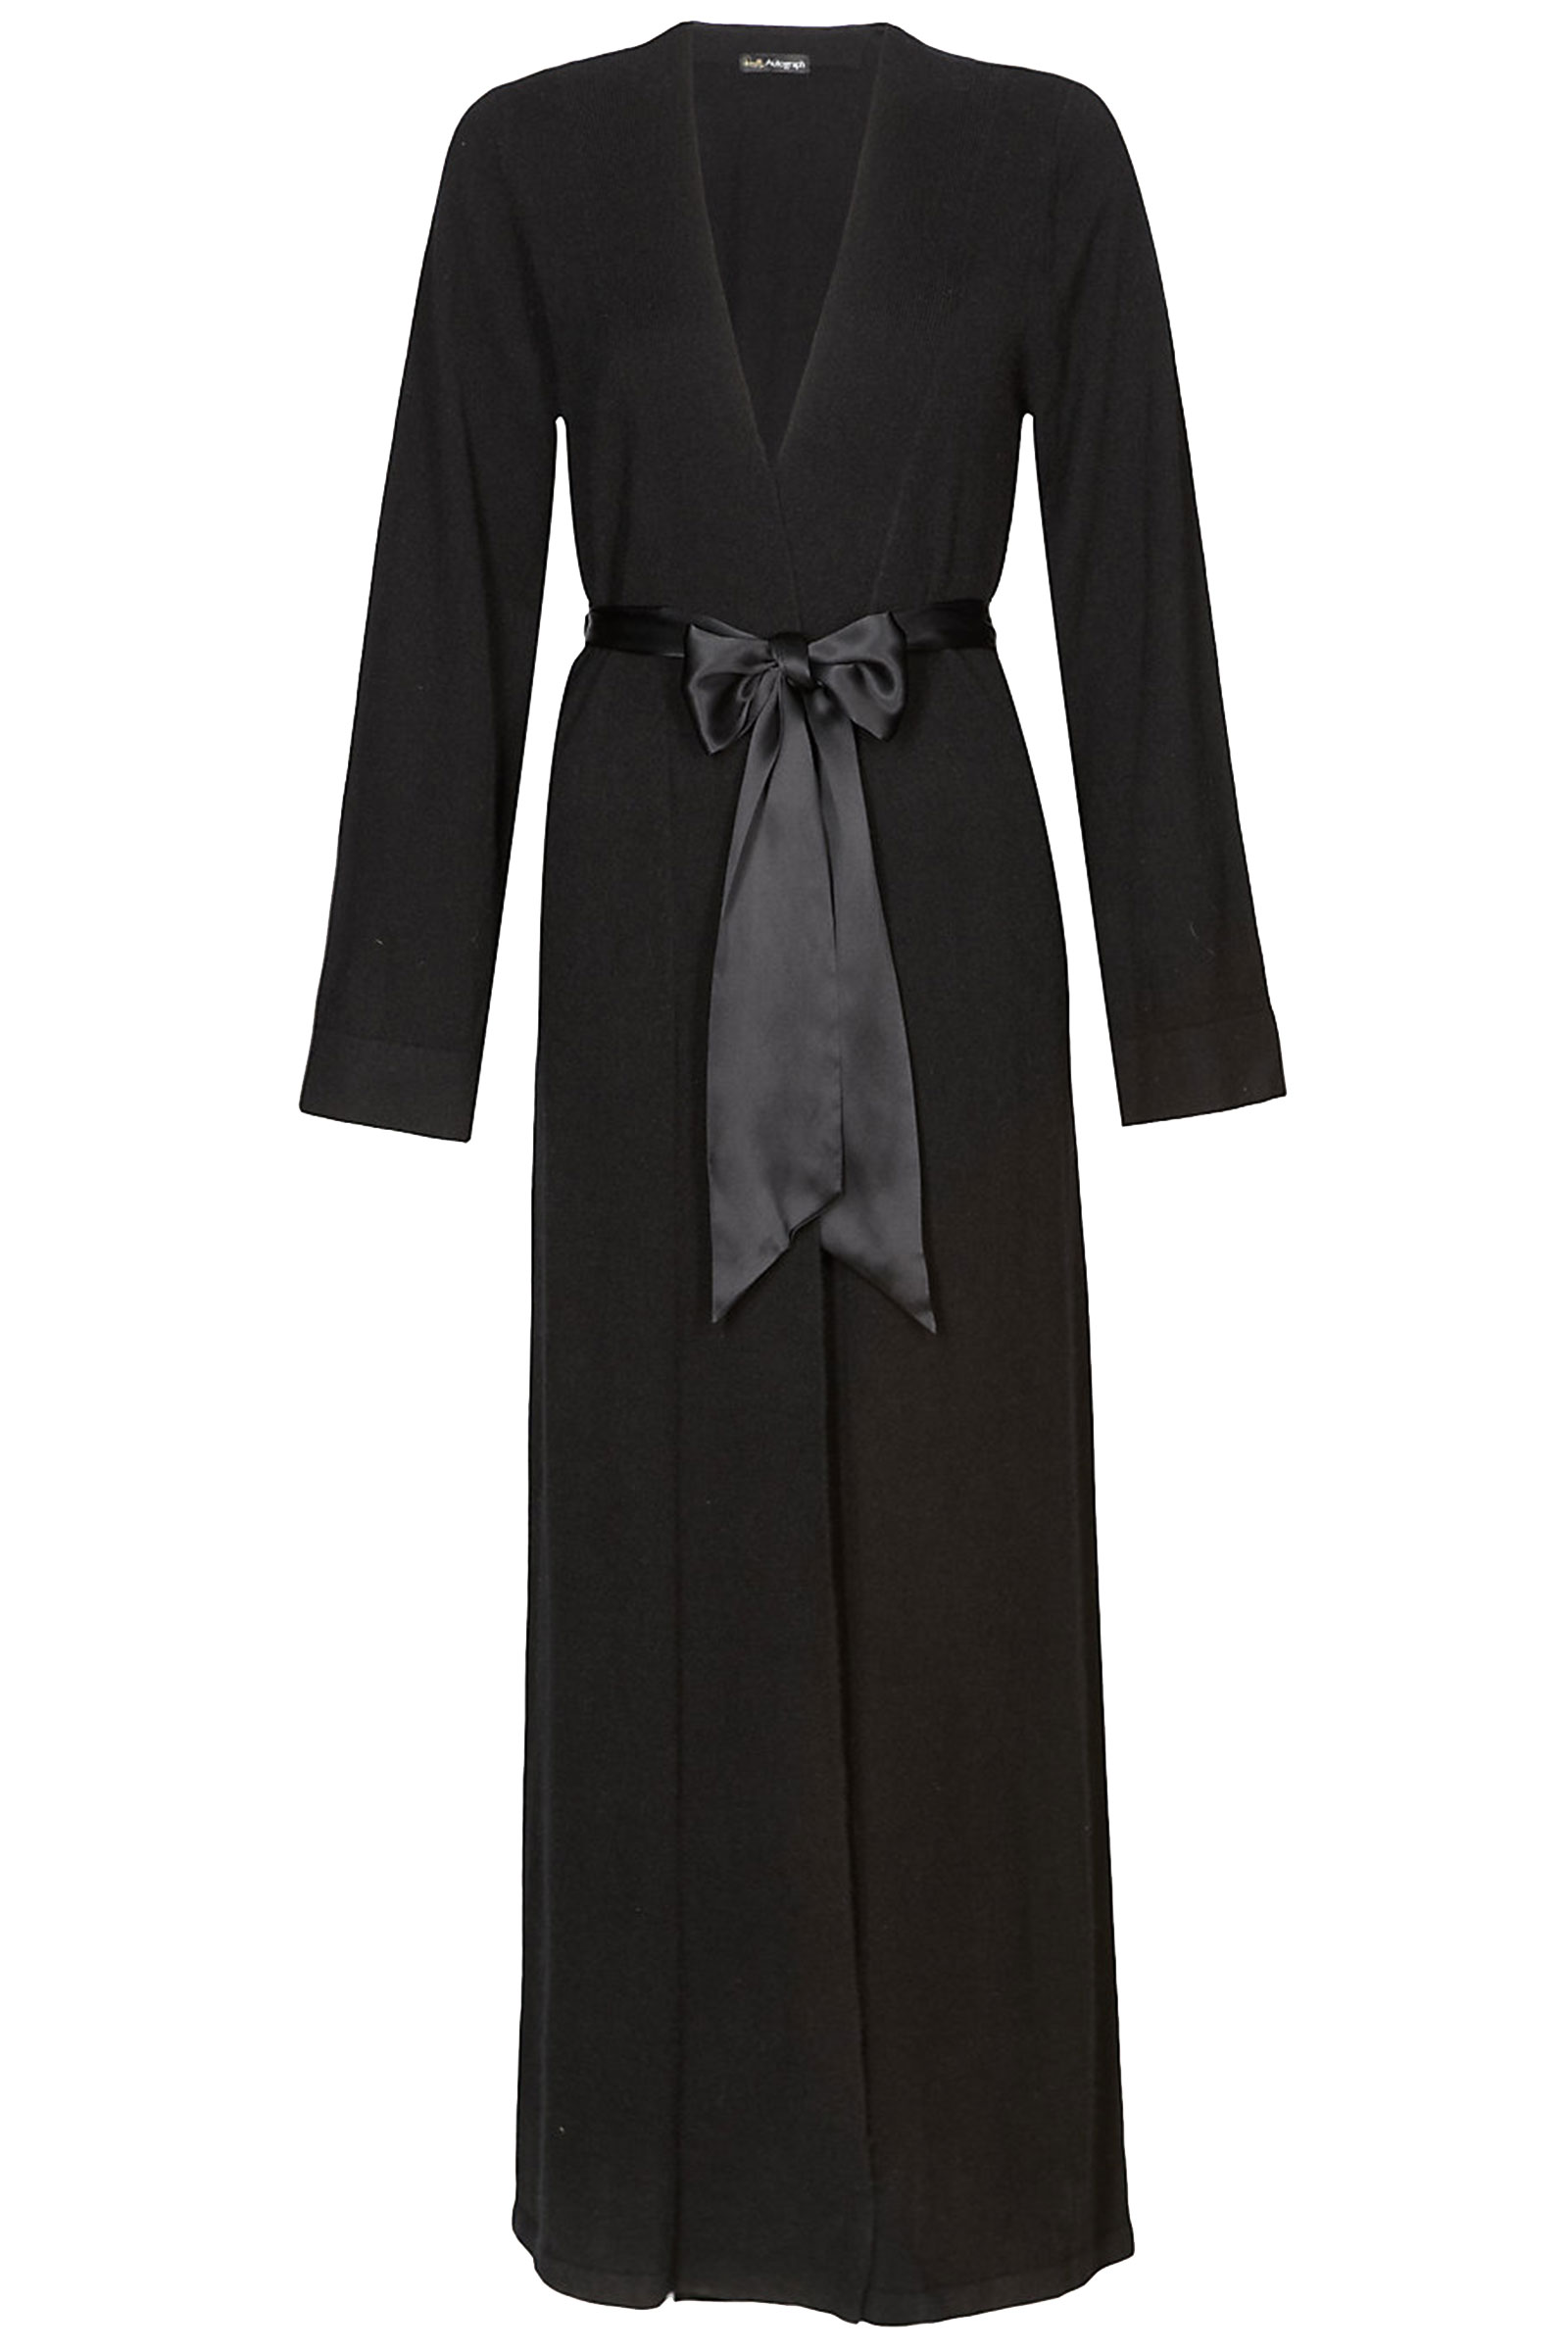 Buy Marks and Spencer Cashmere Long Dressing Gown Online